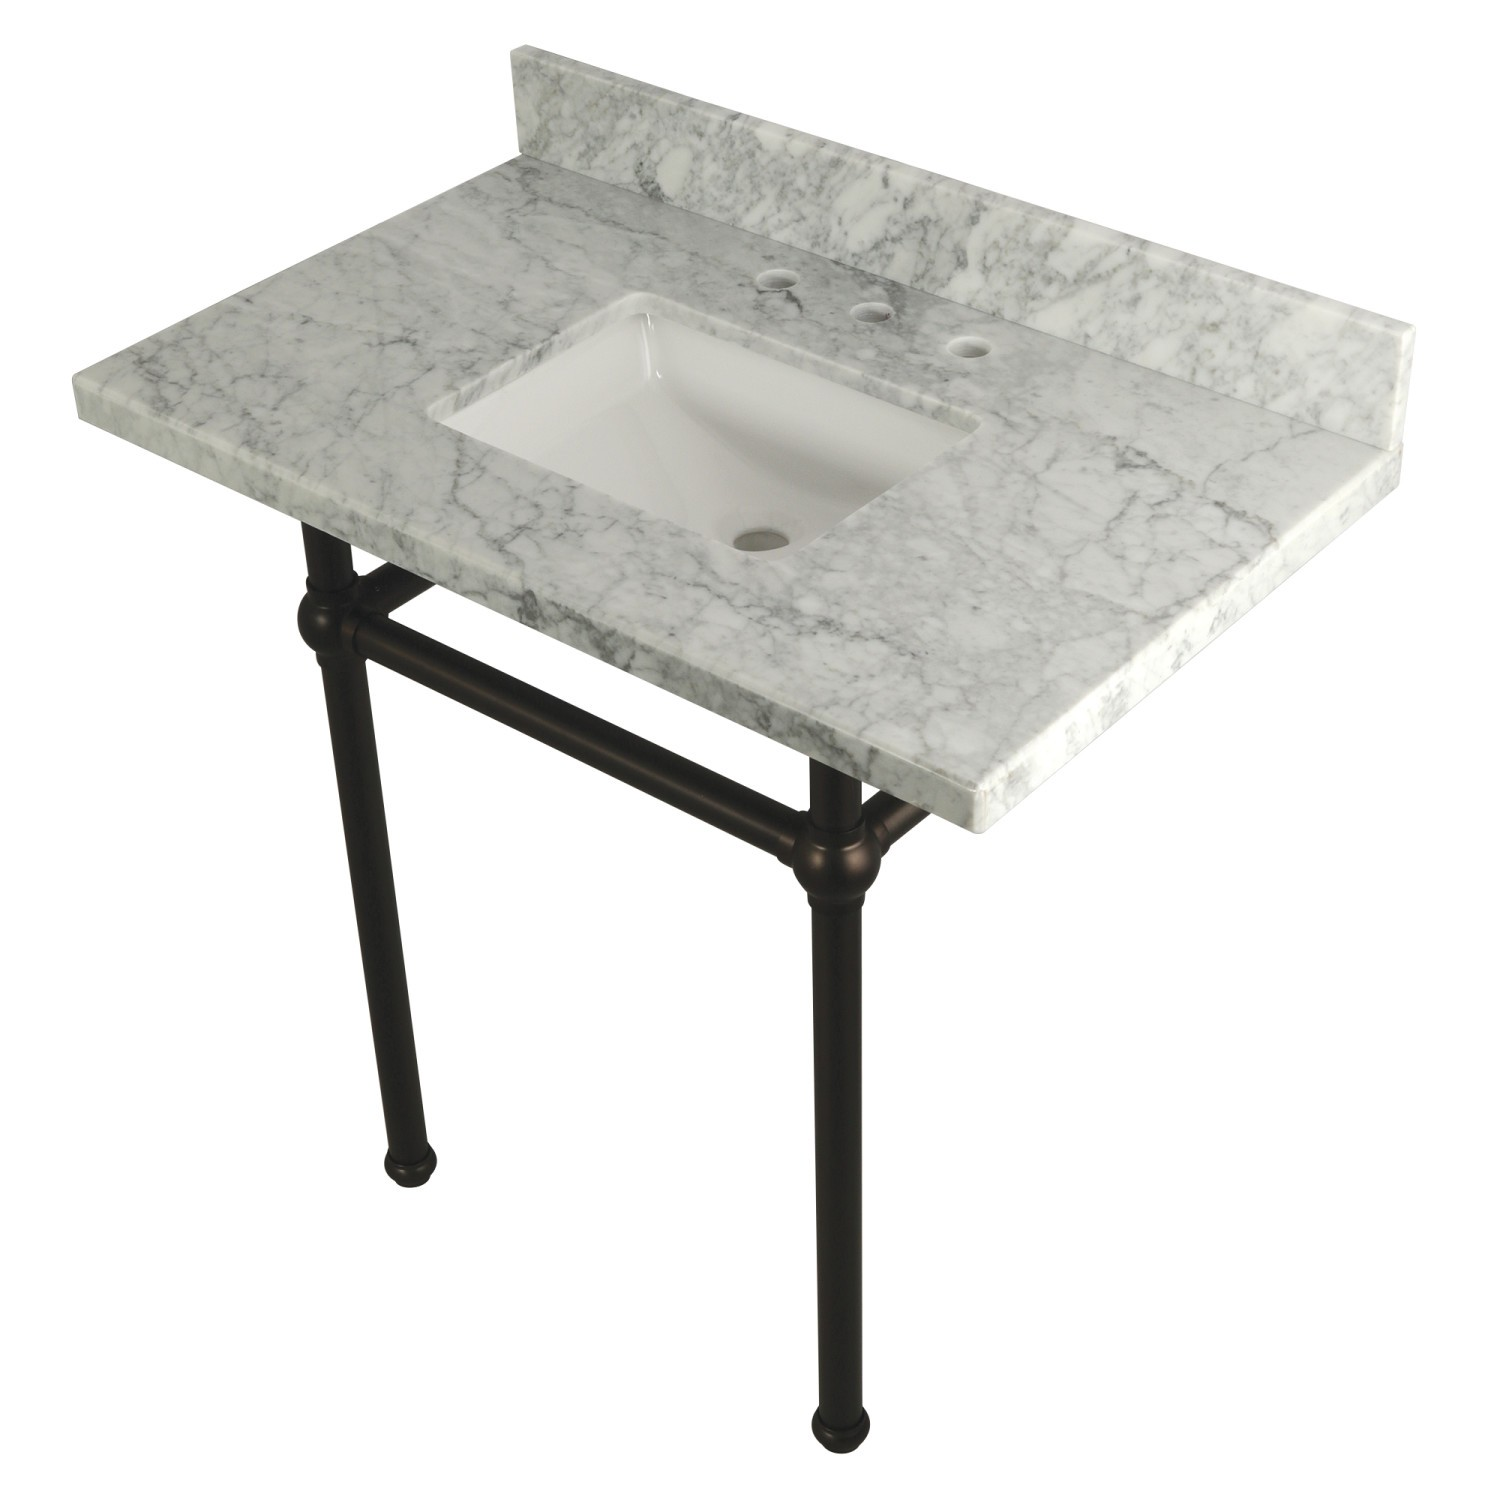 KINGSTON BRASS KVPB36MBSQ TEMPLETON 36 X 22 INCH CARRARA MARBLE VANITY WITH SINK AND BRASS FEET COMBO